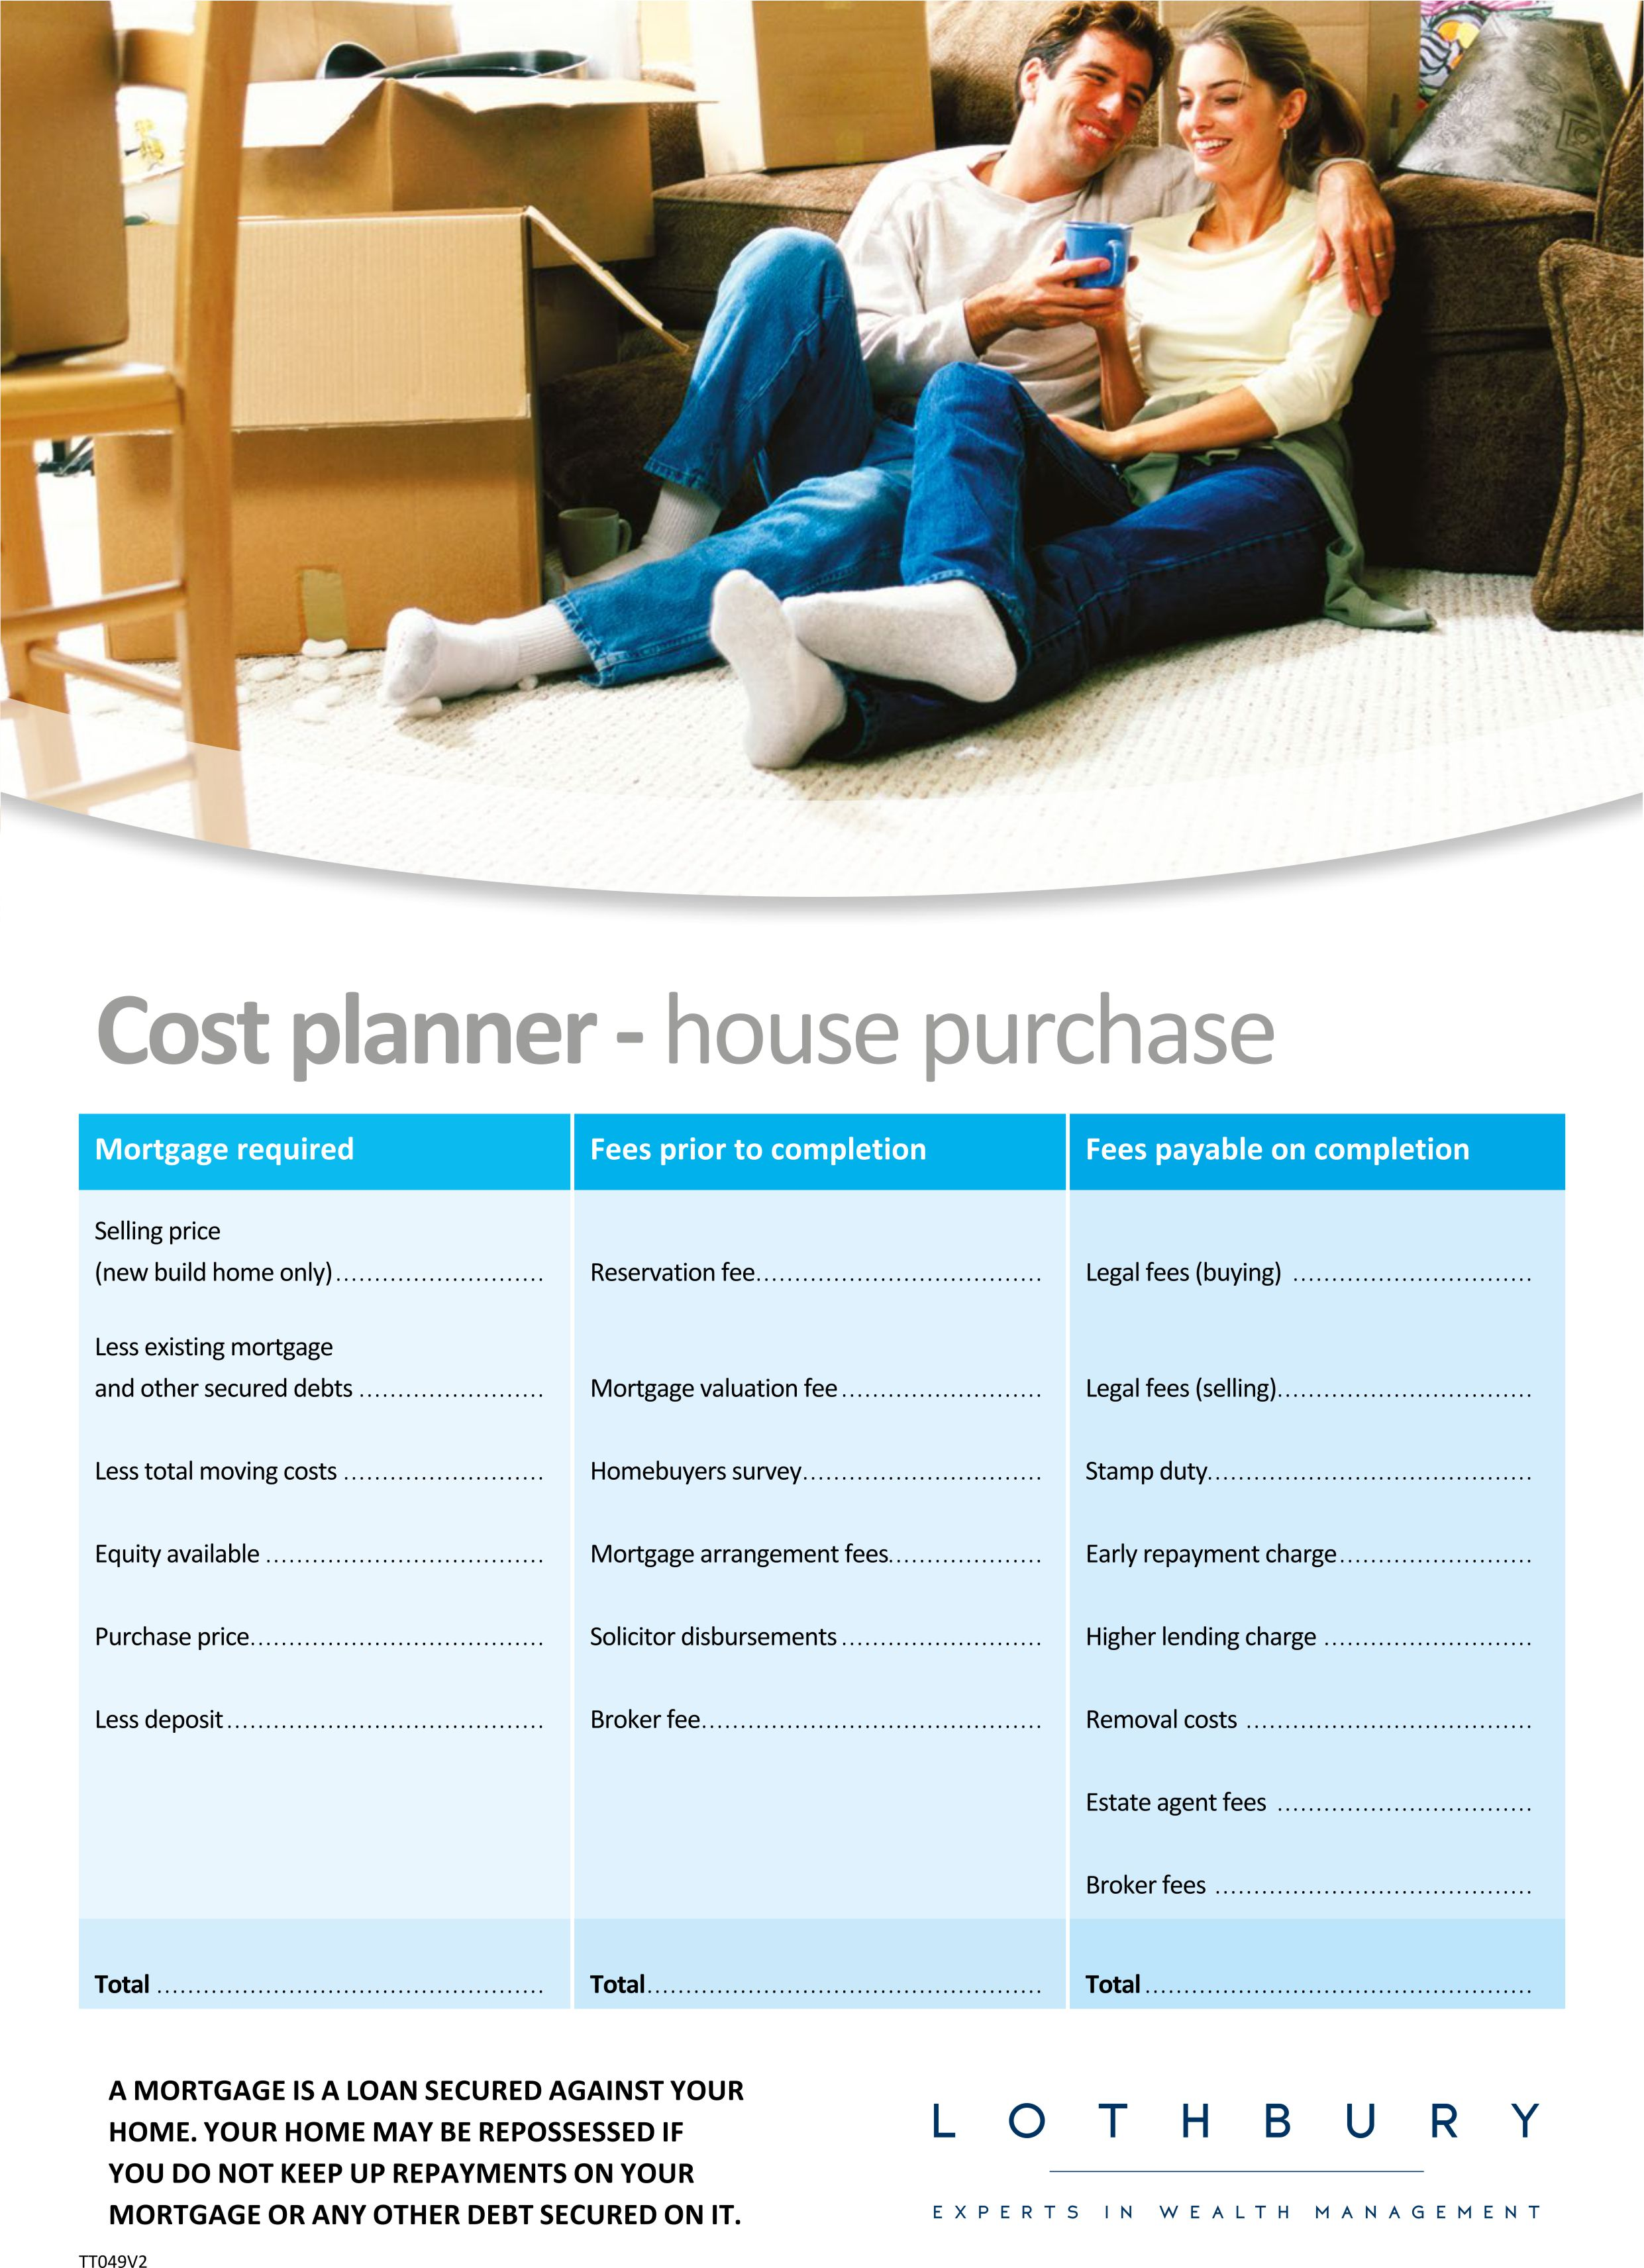 Cost planner - house purchase - Use our cost planner to make sure you have accounted for all of the expenses of buying a house